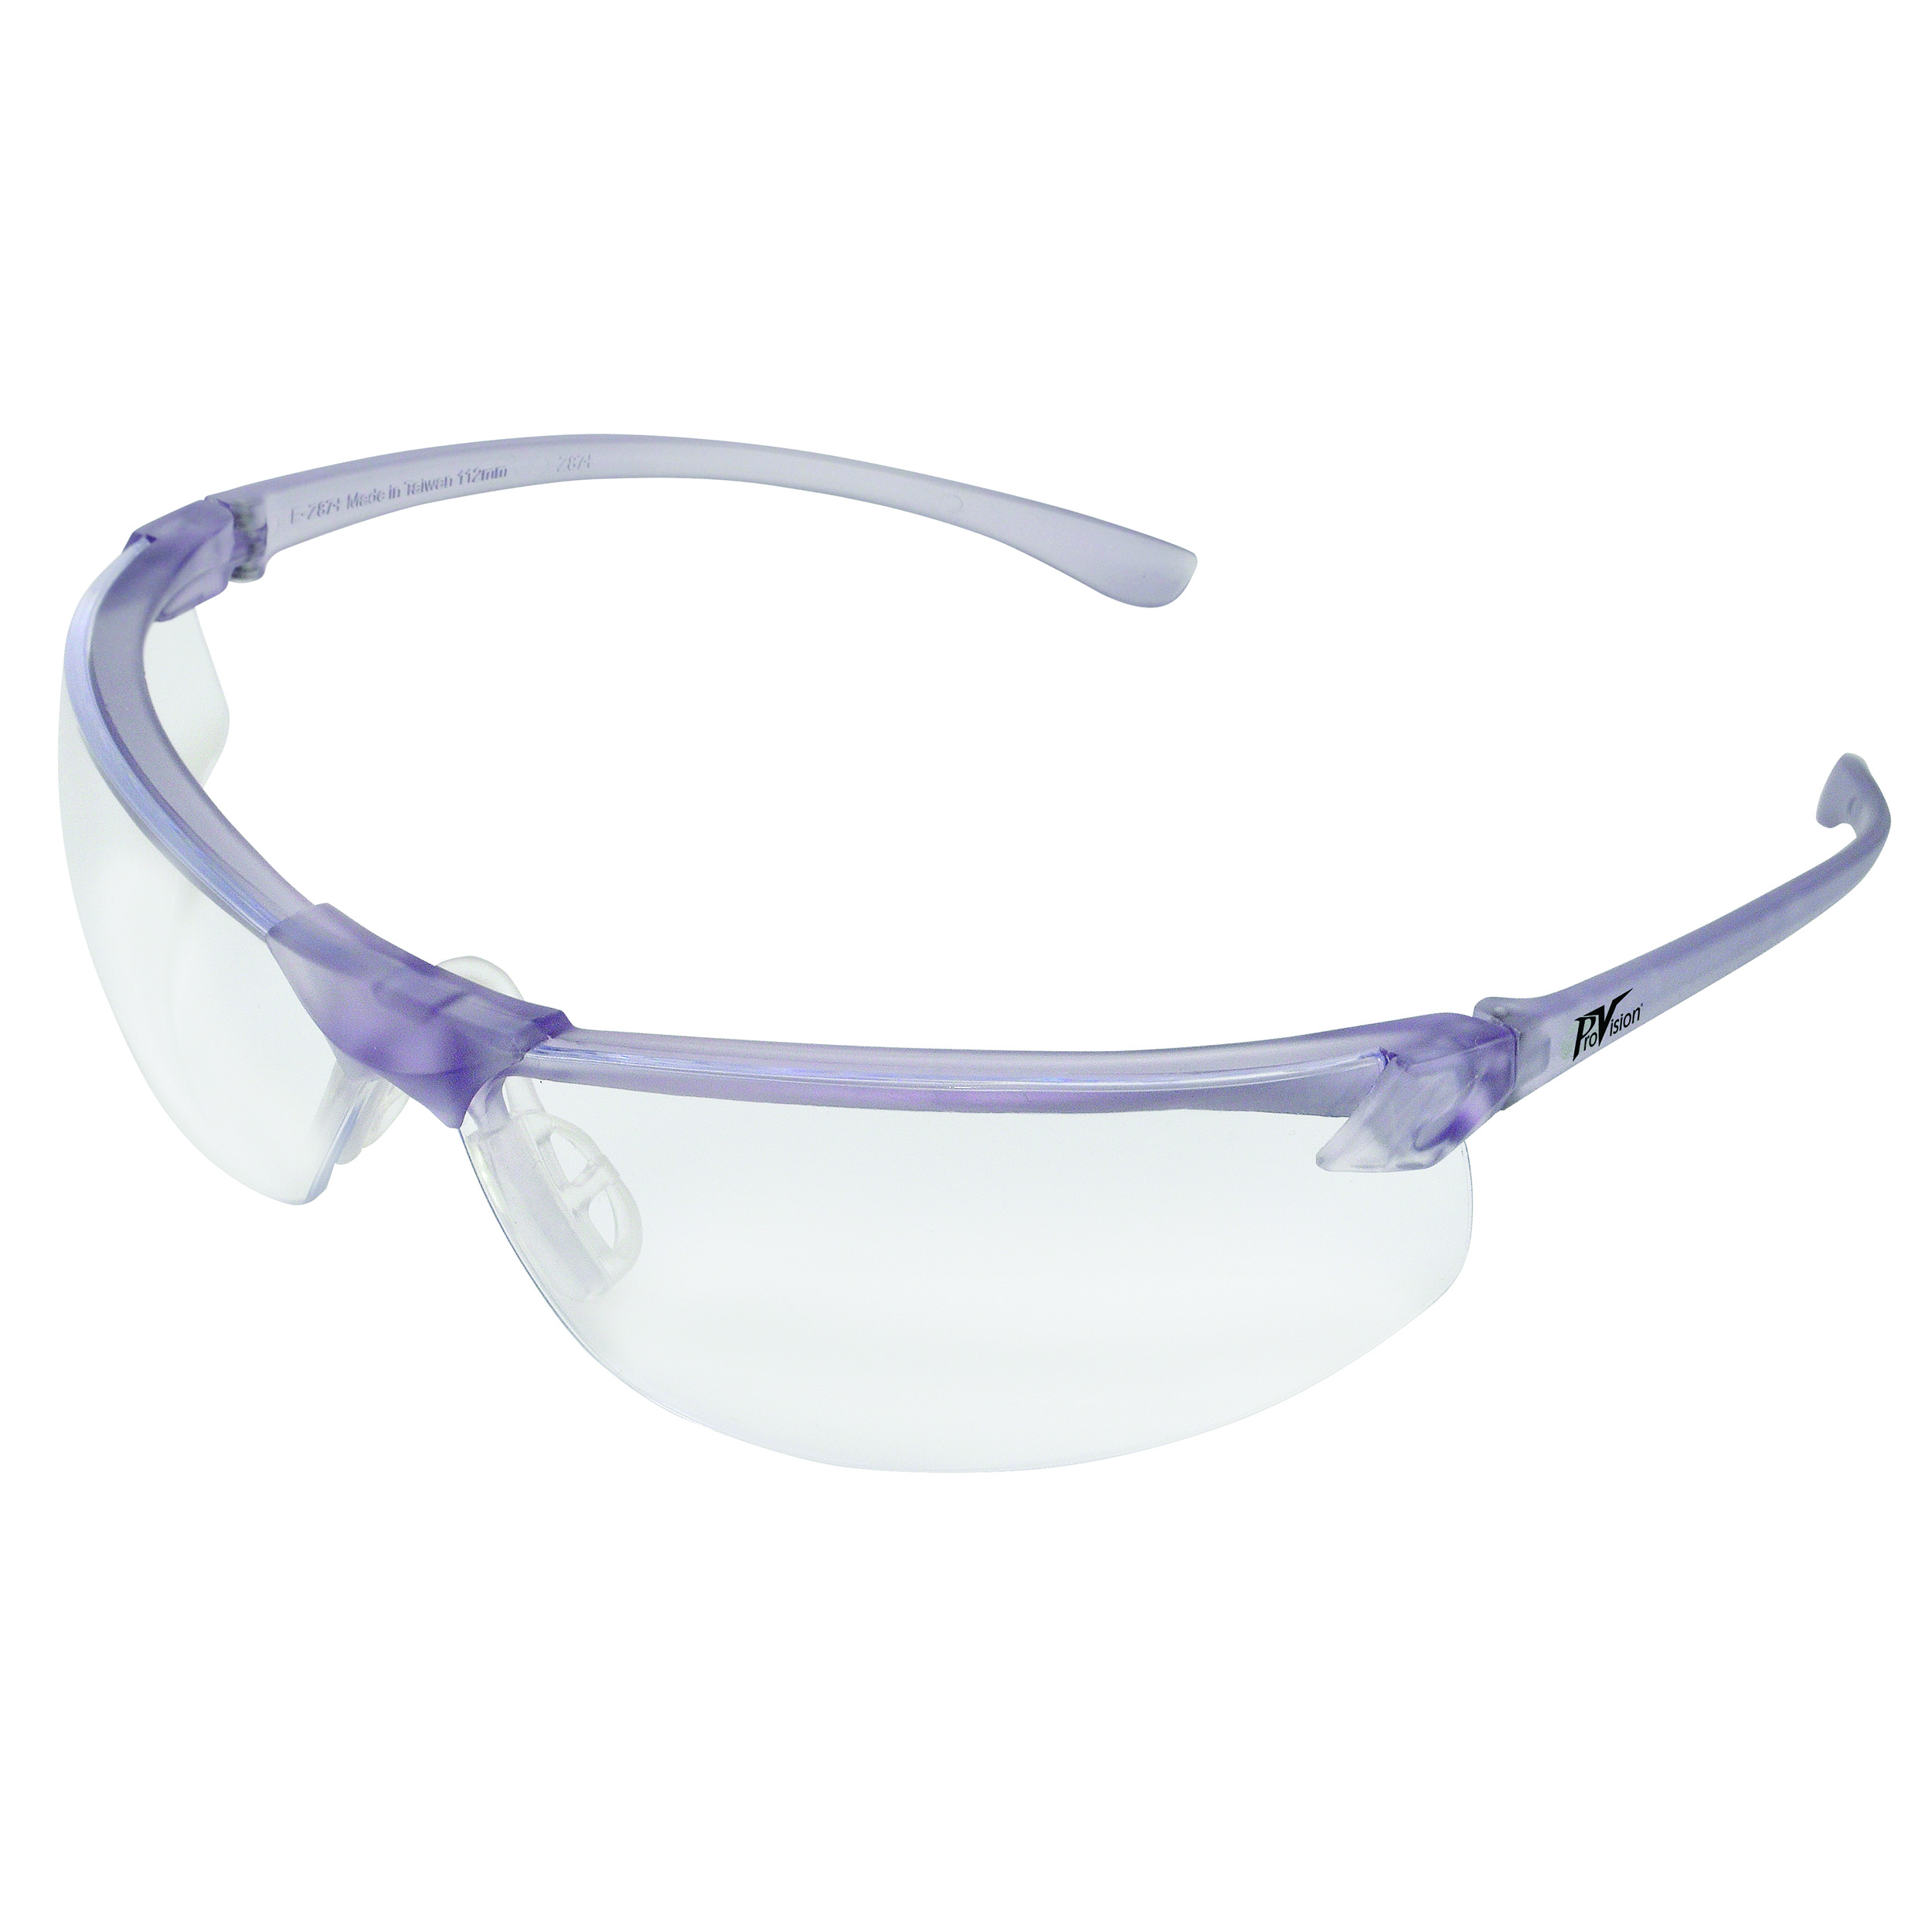 9200115 ProVision Allure Eyewear Lavender Frame, Clear Lens, 3604LC